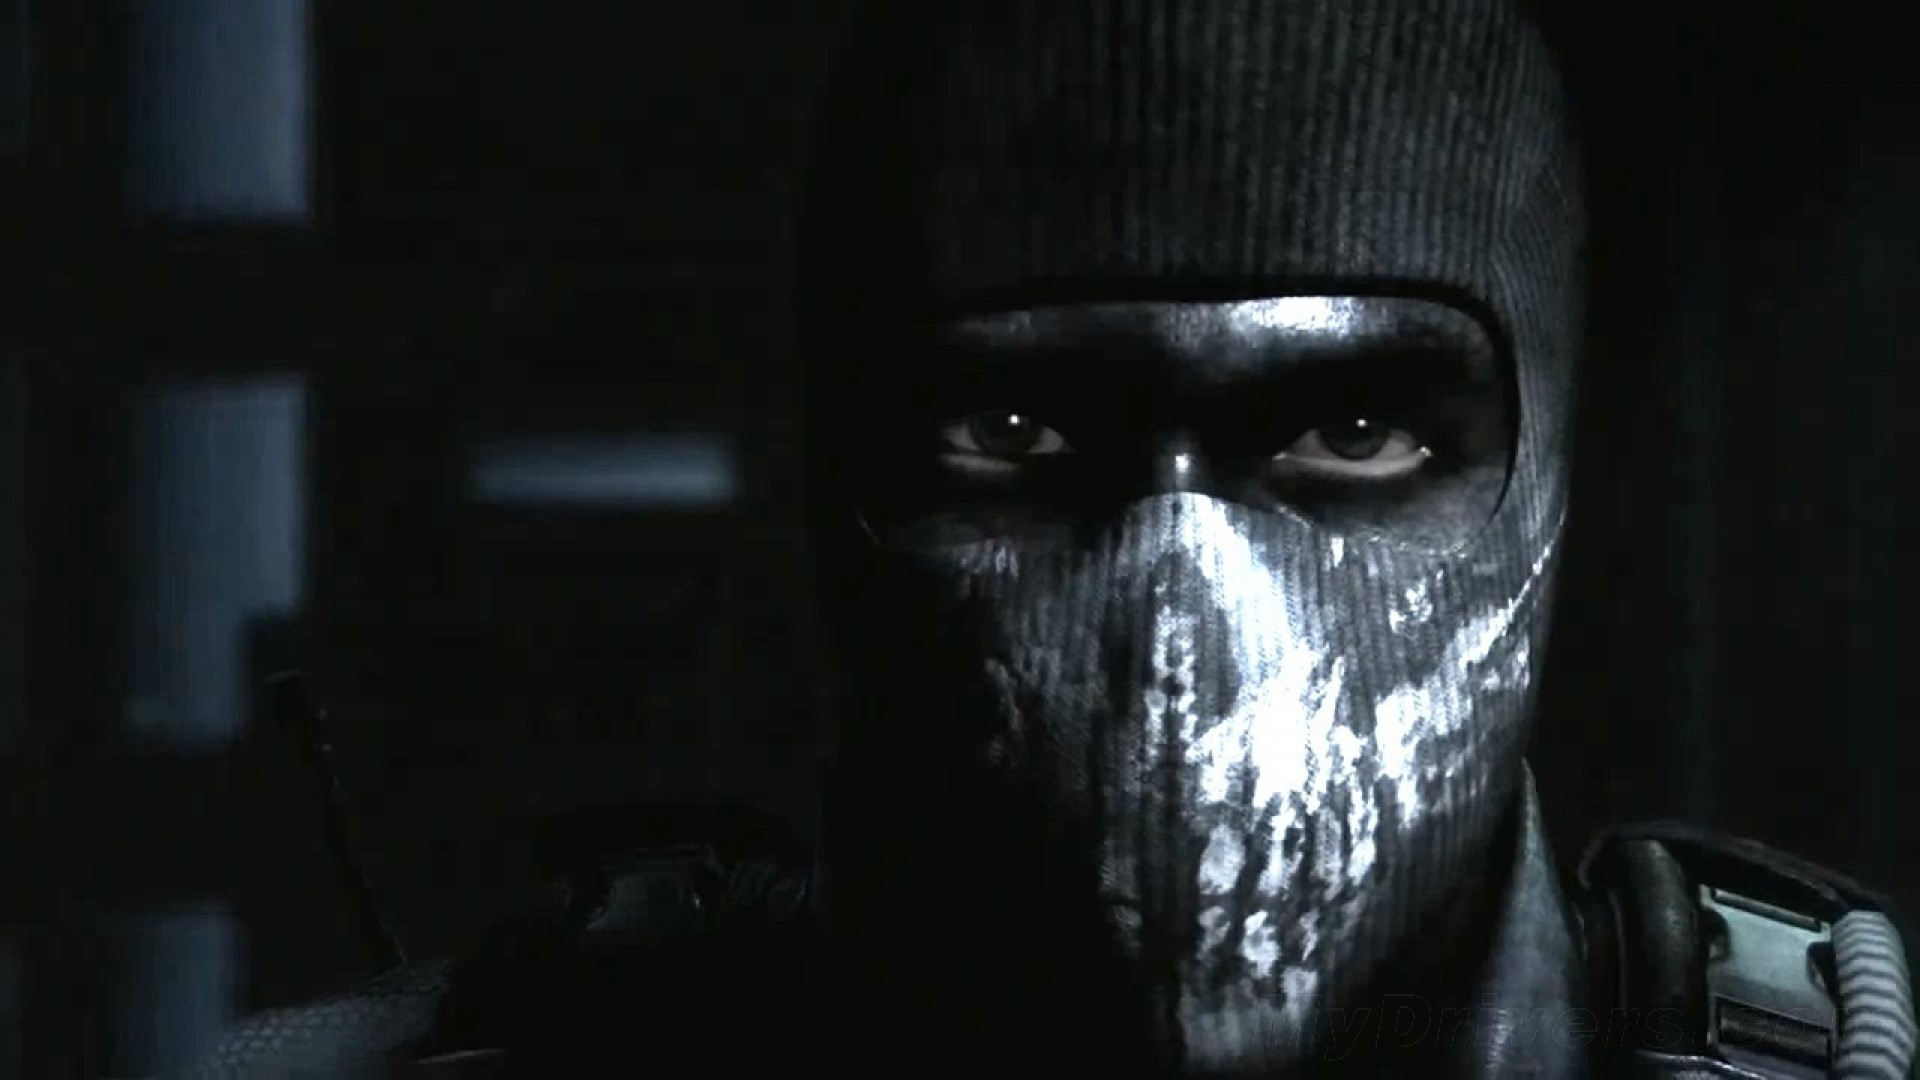 Call Of Duty Ghosts wallpaper | 1920x1080 | #897